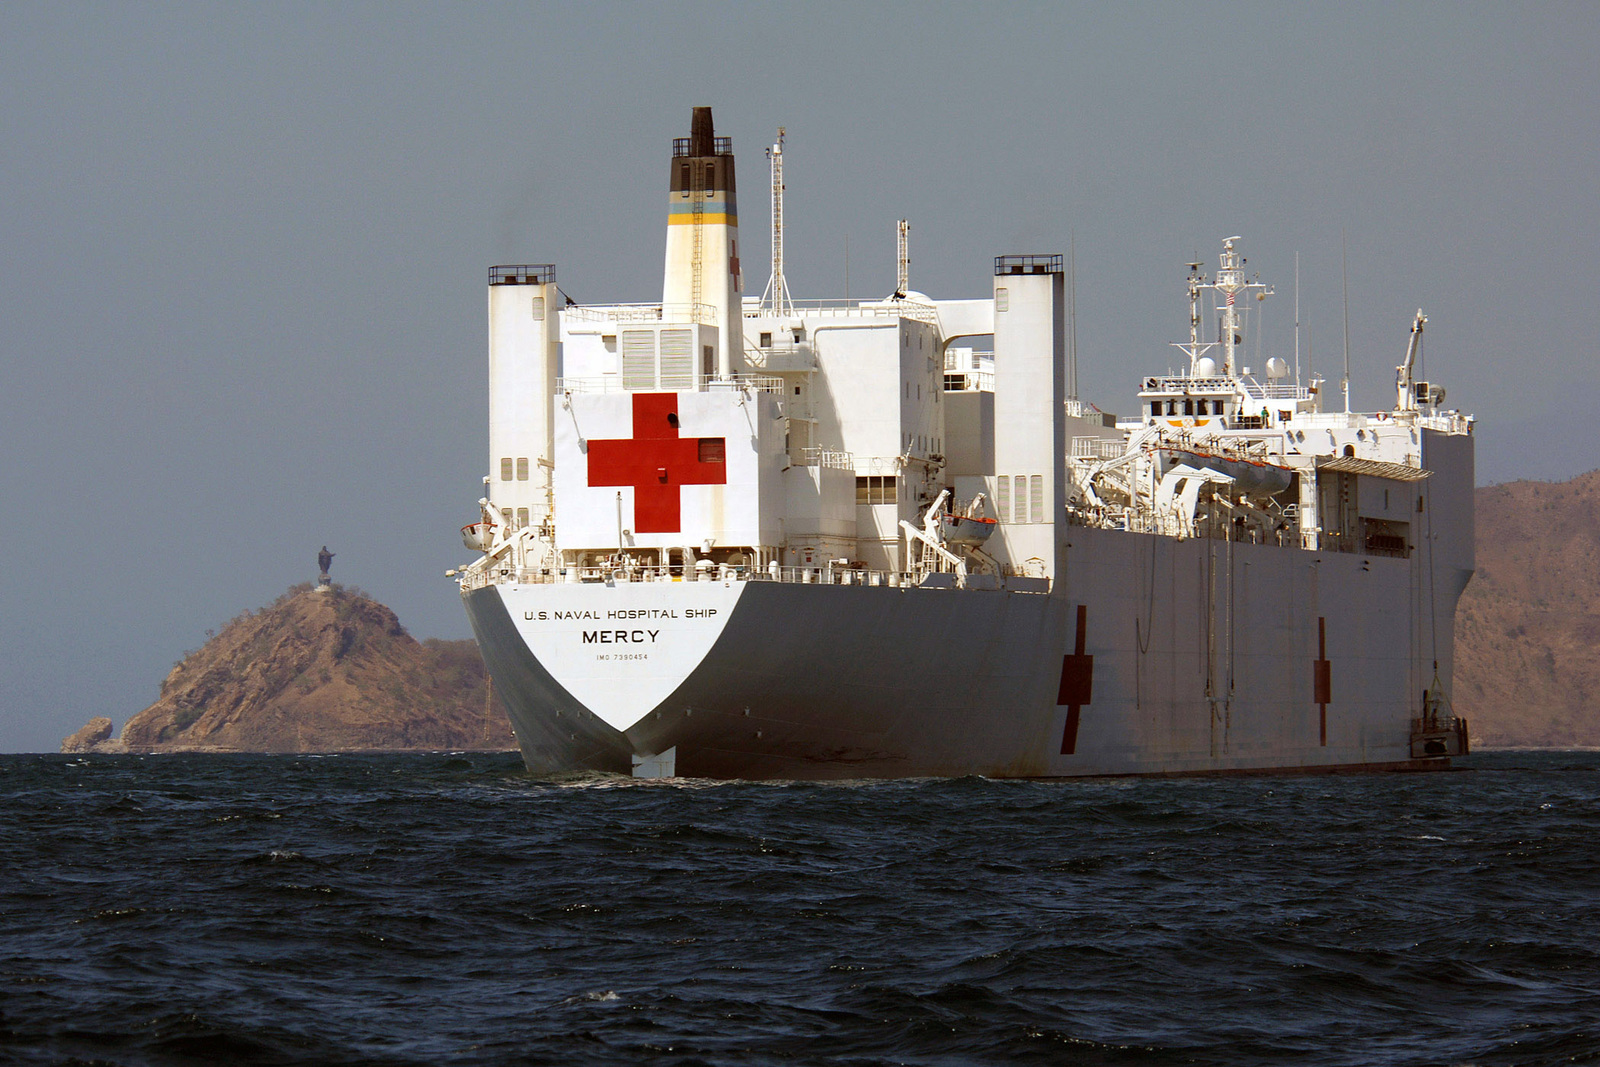 The U.S. Navy Military Sealift Command Mercy Class Hospital Ship USNS MERCY (T-AH 19) sits anchored in the Flores Sea, off the coast of Dili, East Timor, Indonesia, on Aug. 29, 2006. The MERCY is in the fourth month of a five-month humanitarian and civic assistance deployment to Southeast Asia. (U.S. Navy photo by CHIEF mass Communications SPECIALIST Edward G. Martens) (RELEASED)